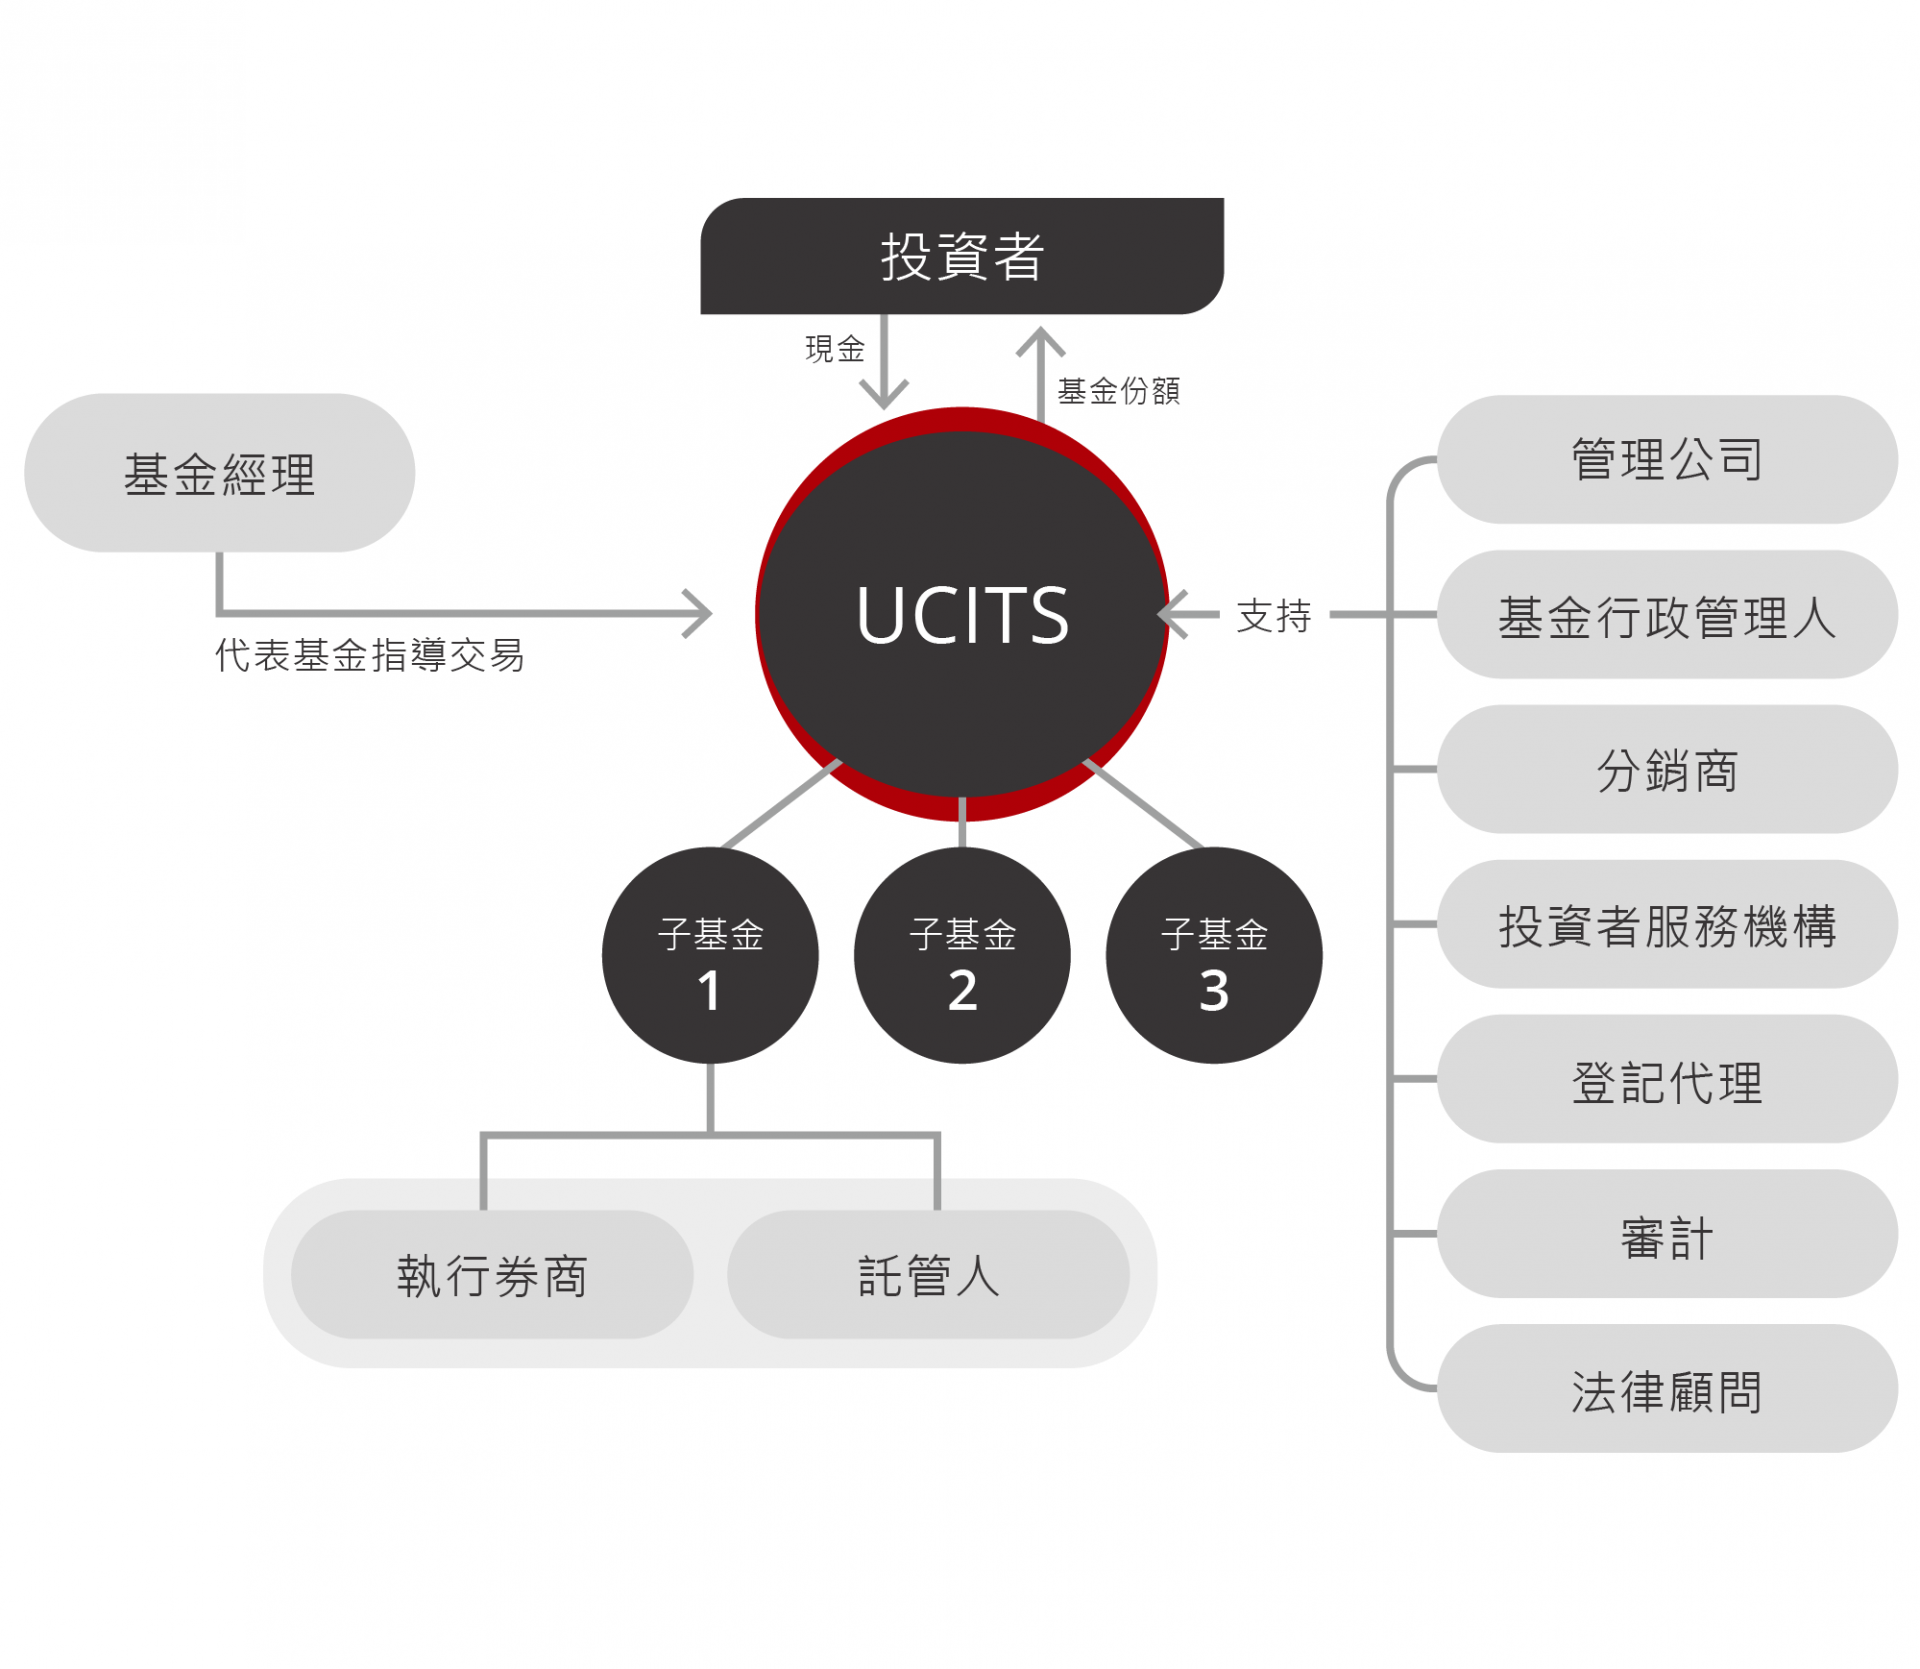 ucits_cn.png